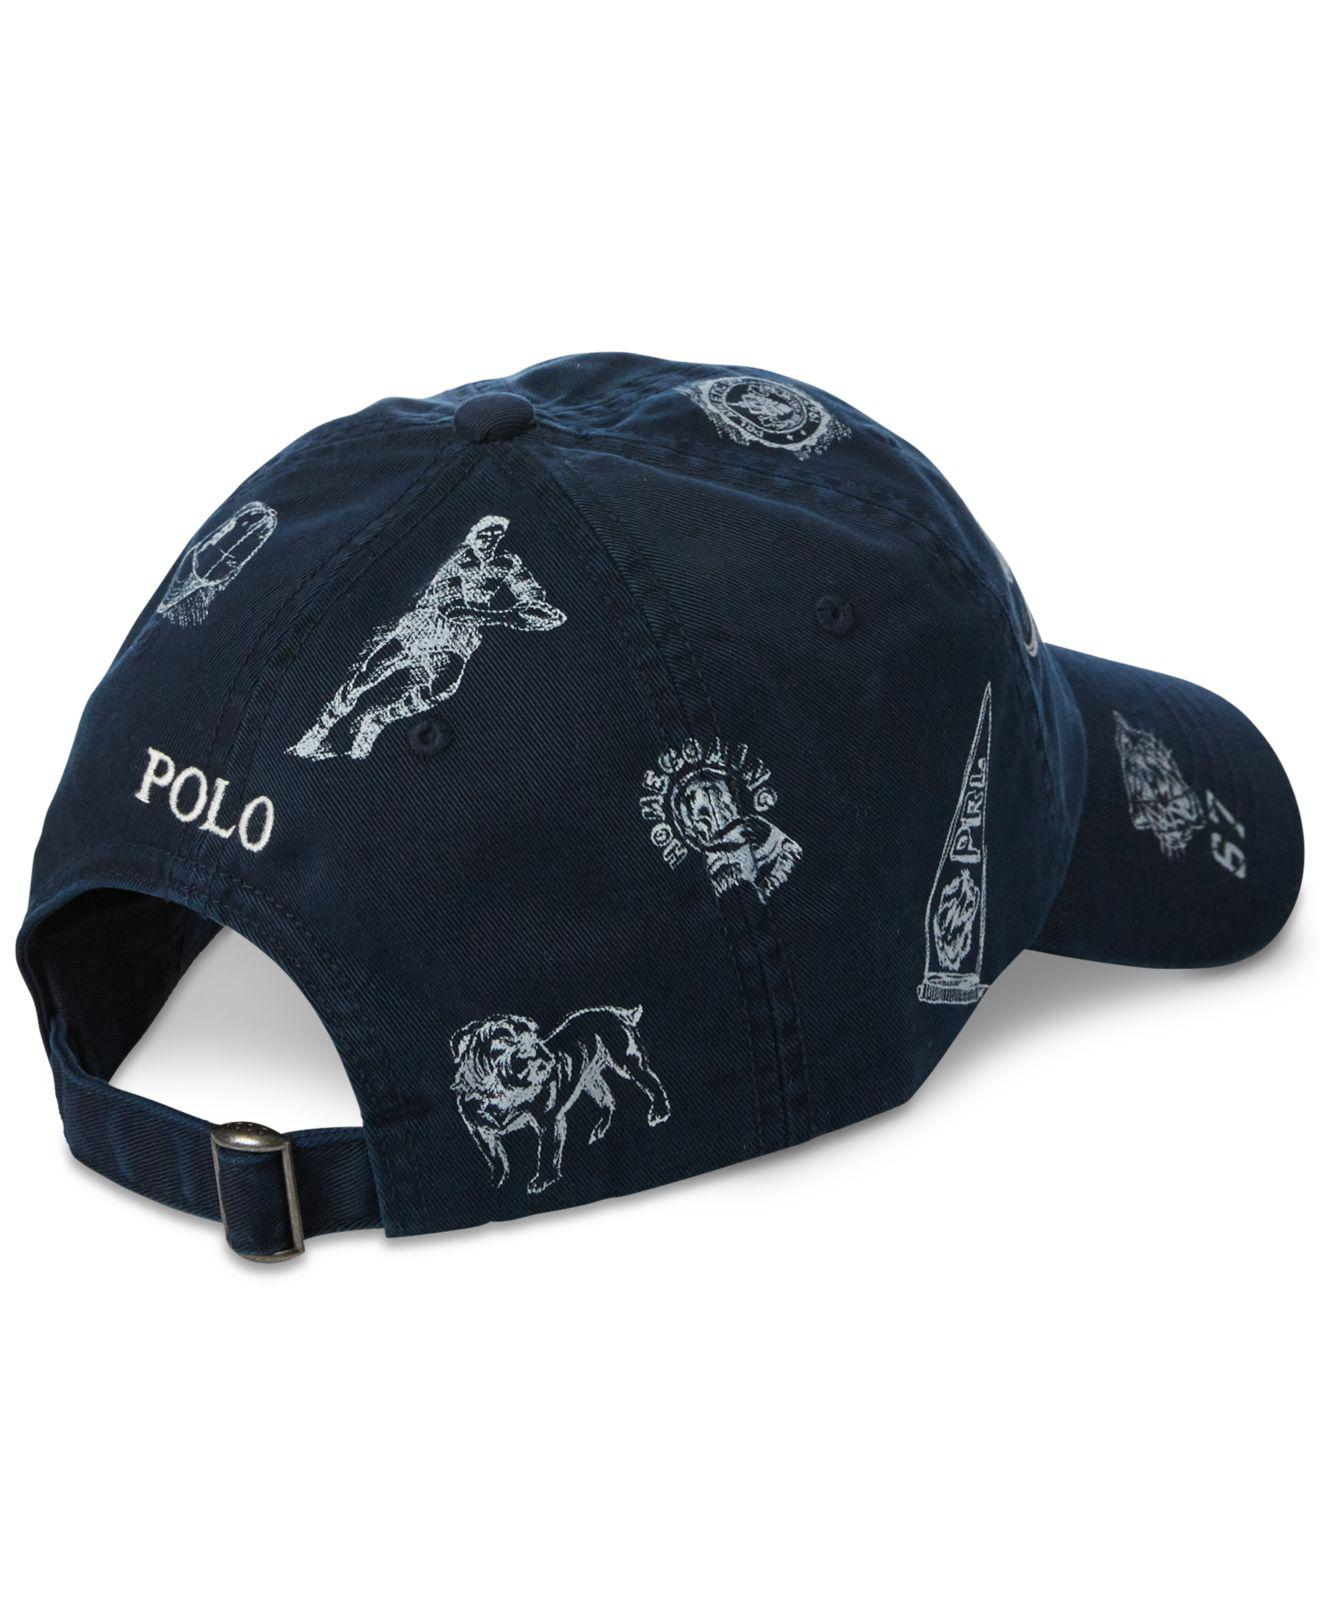 1371fe23f7652 Polo Ralph Lauren Printed Baseball Cap in Blue for Men - Save 20% - Lyst